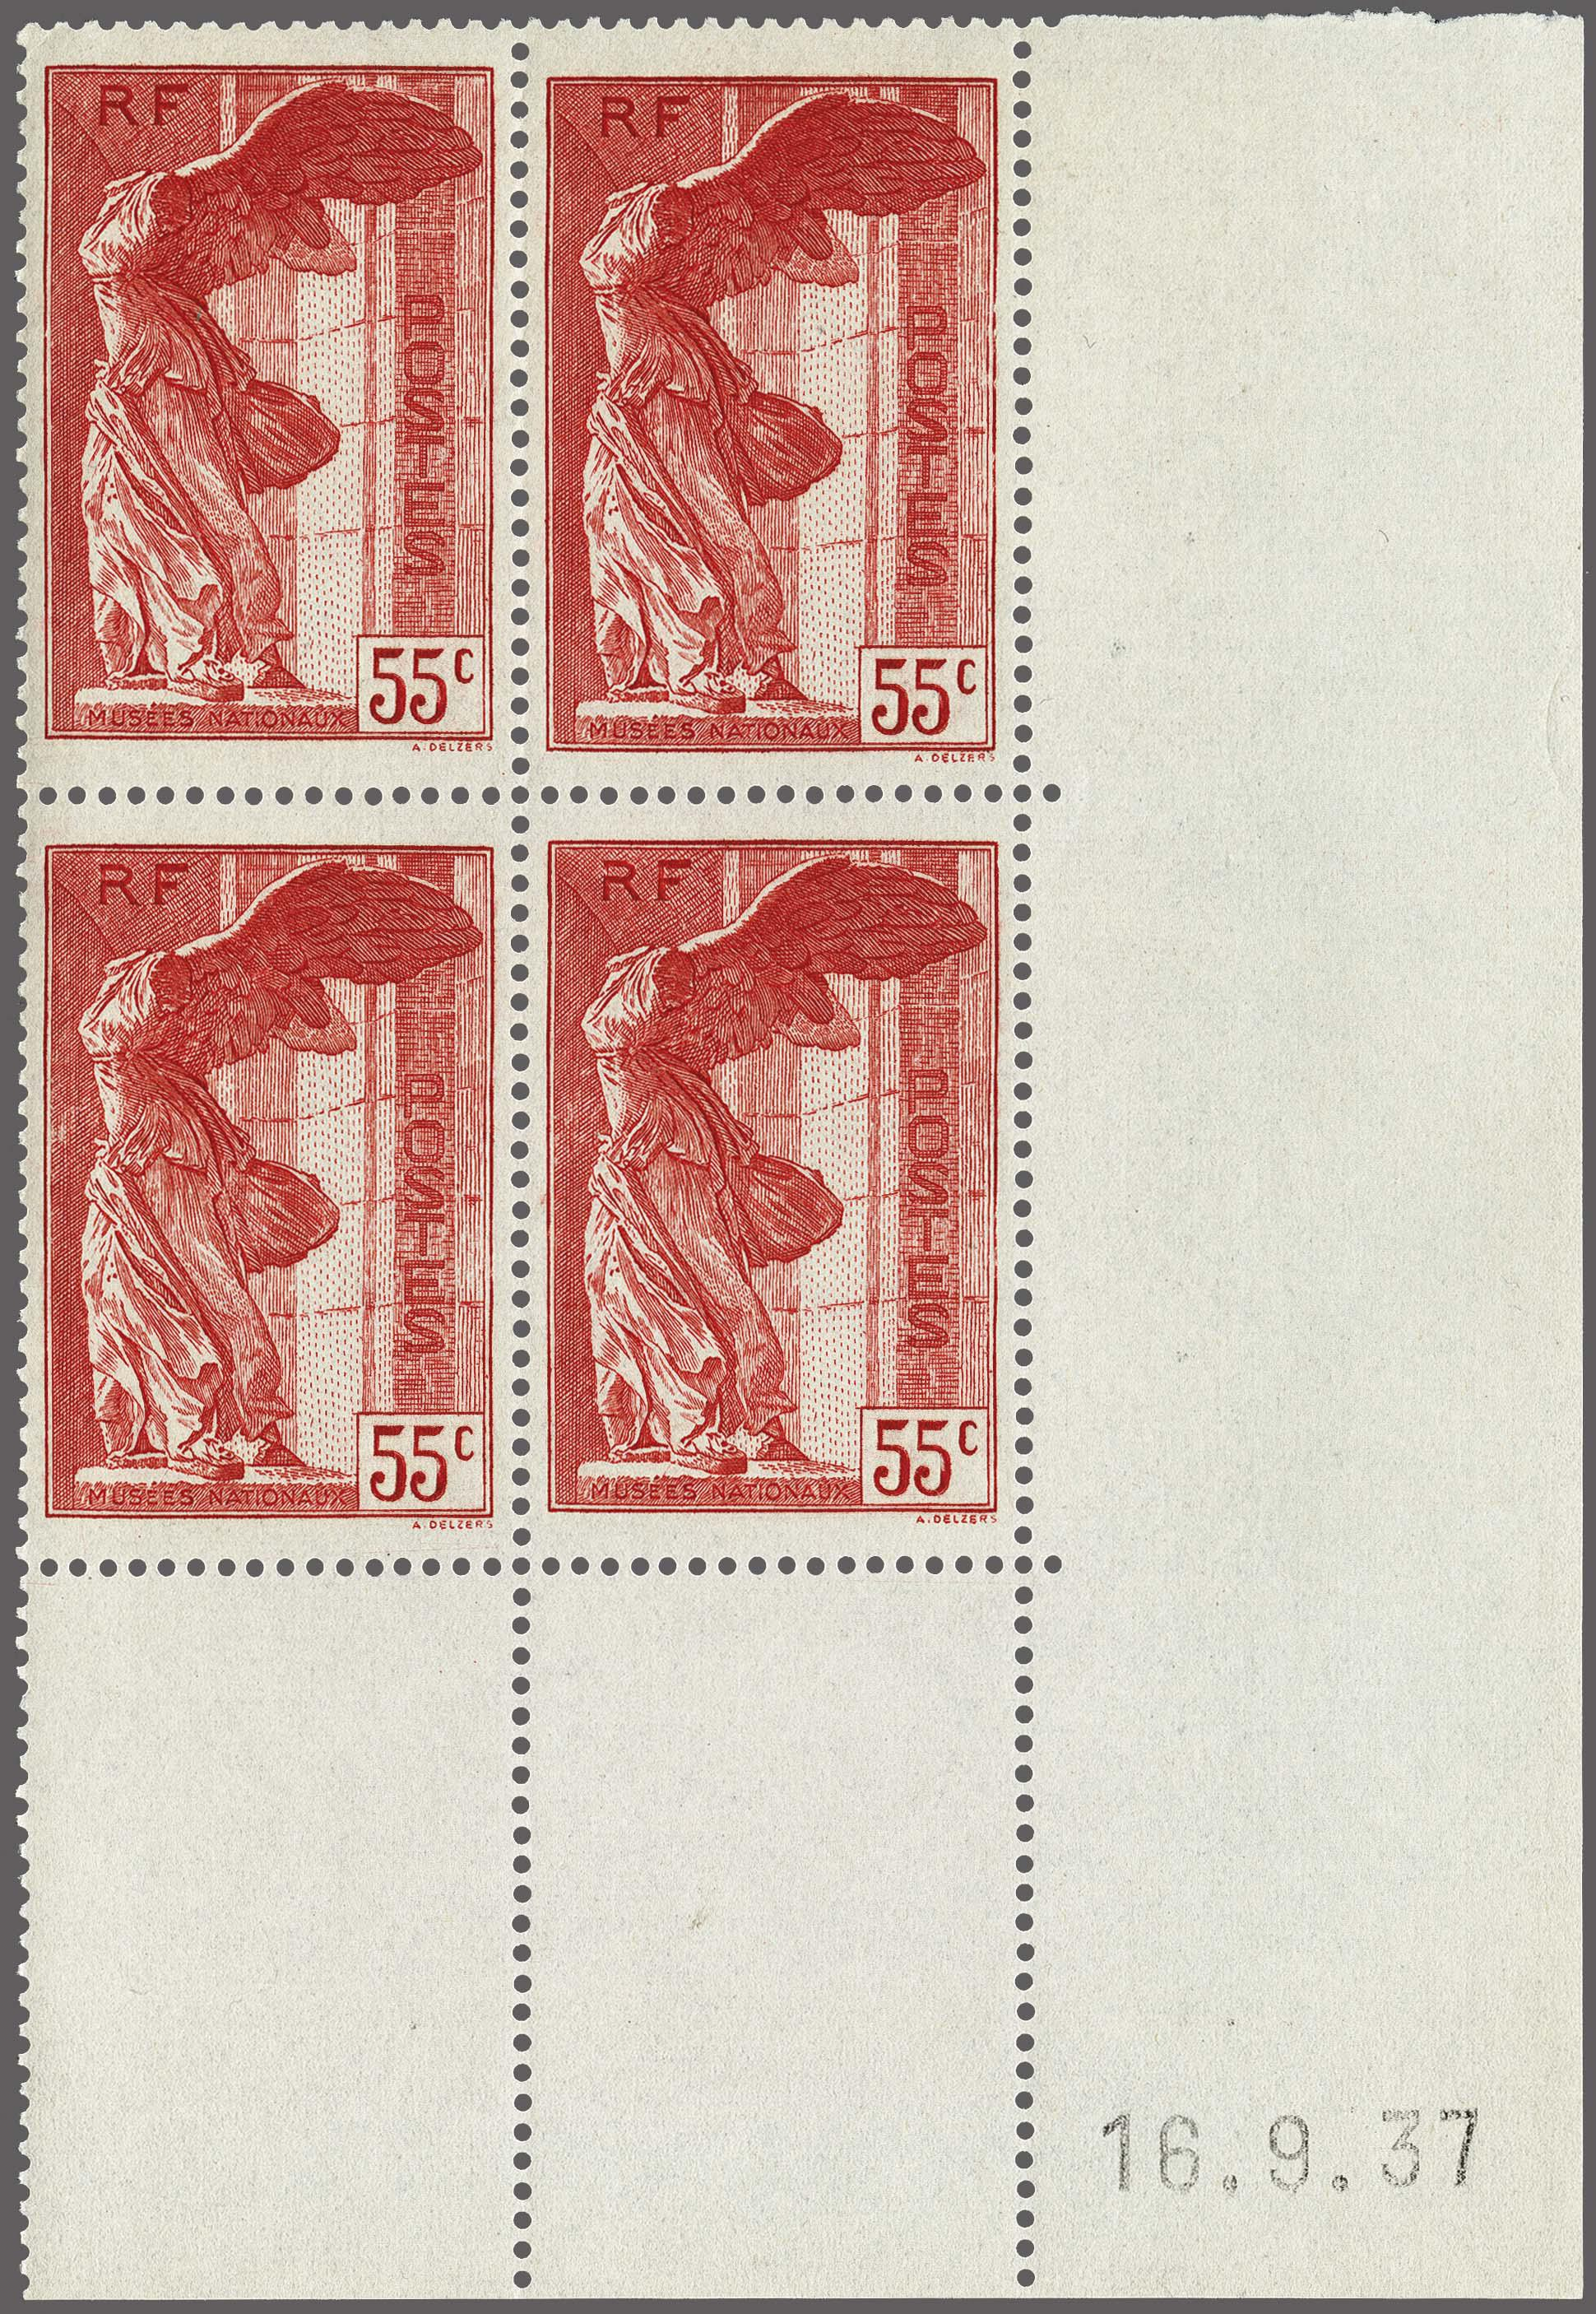 Lot 99 - France and former colonies France -  Corinphila Veilingen Auction 250-253 - Day 1 - Foreign countries